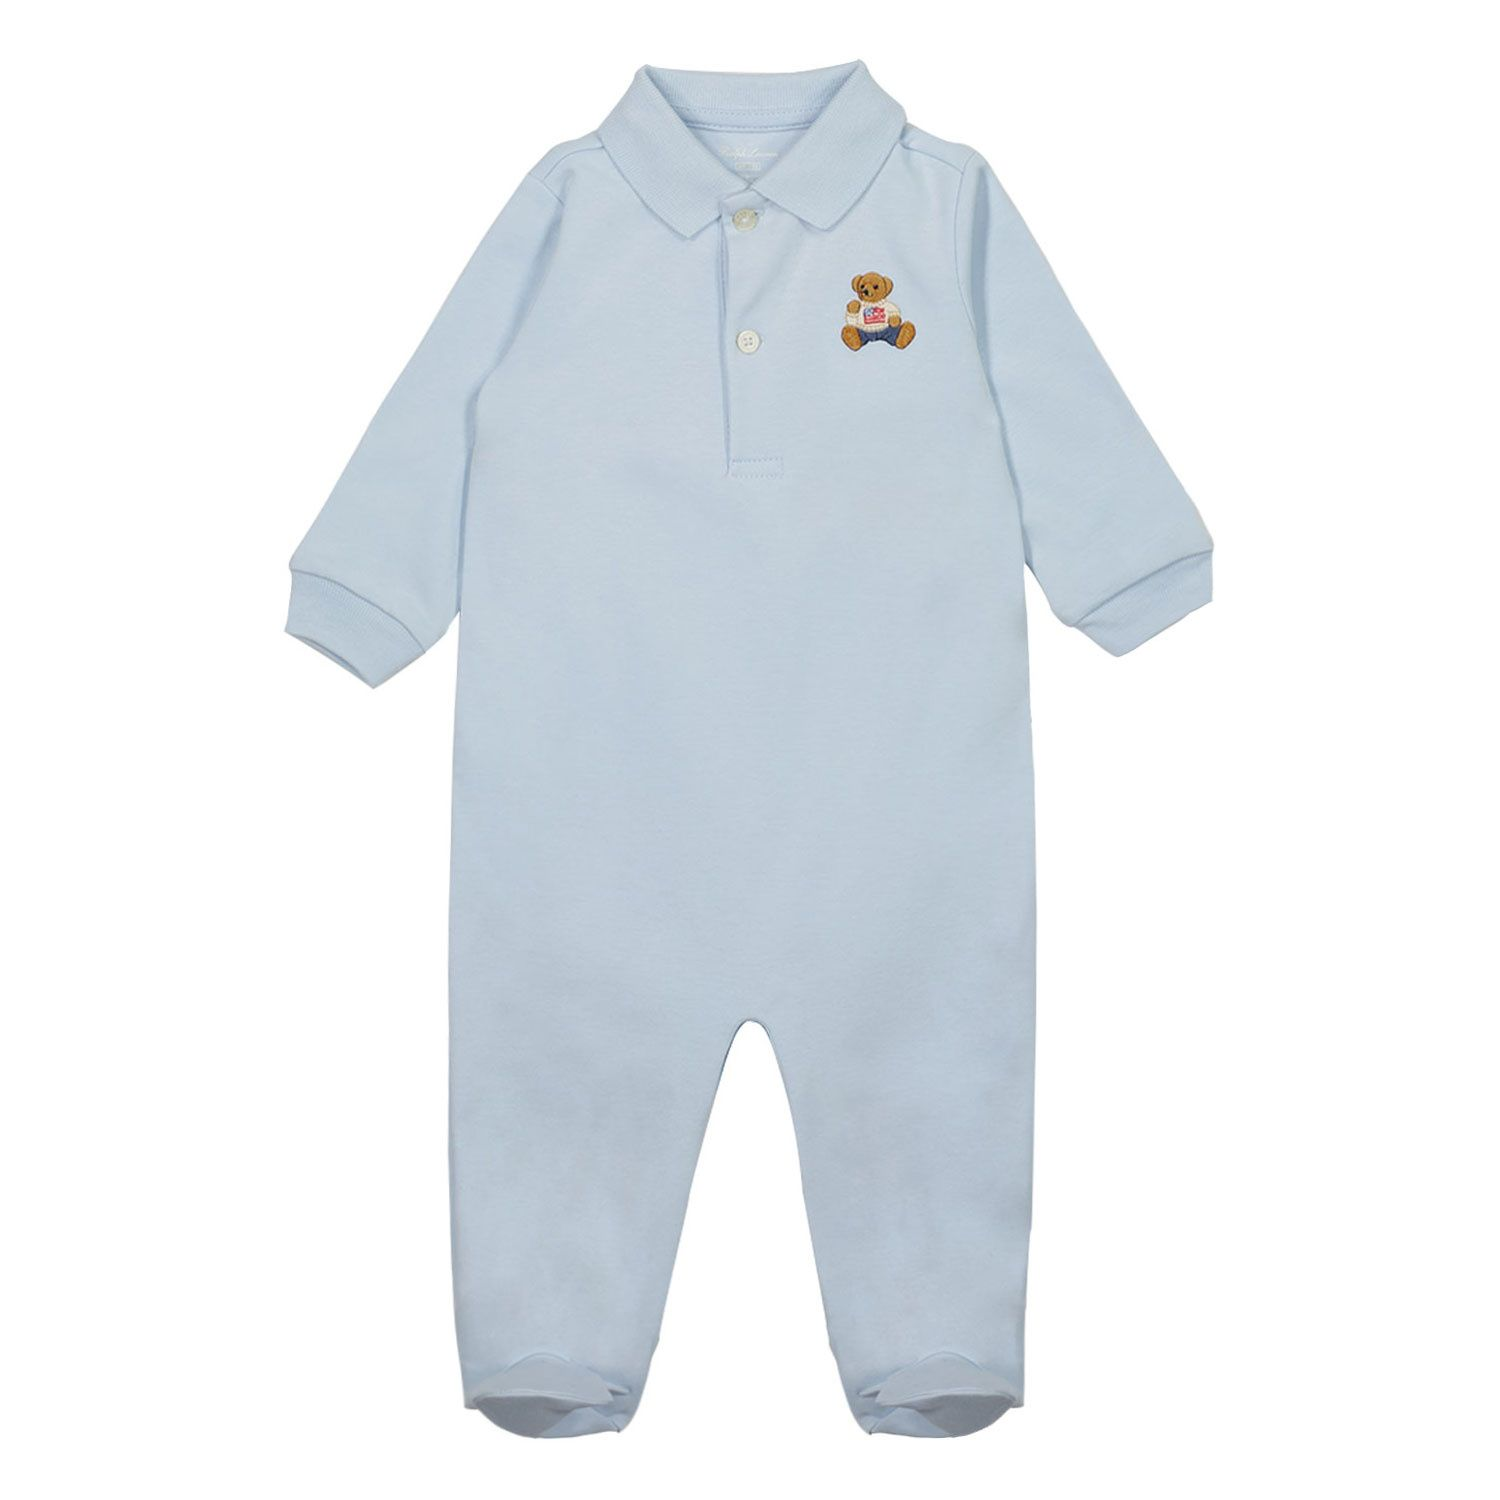 Picture of Ralph Lauren 320685653 baby playsuit light blue